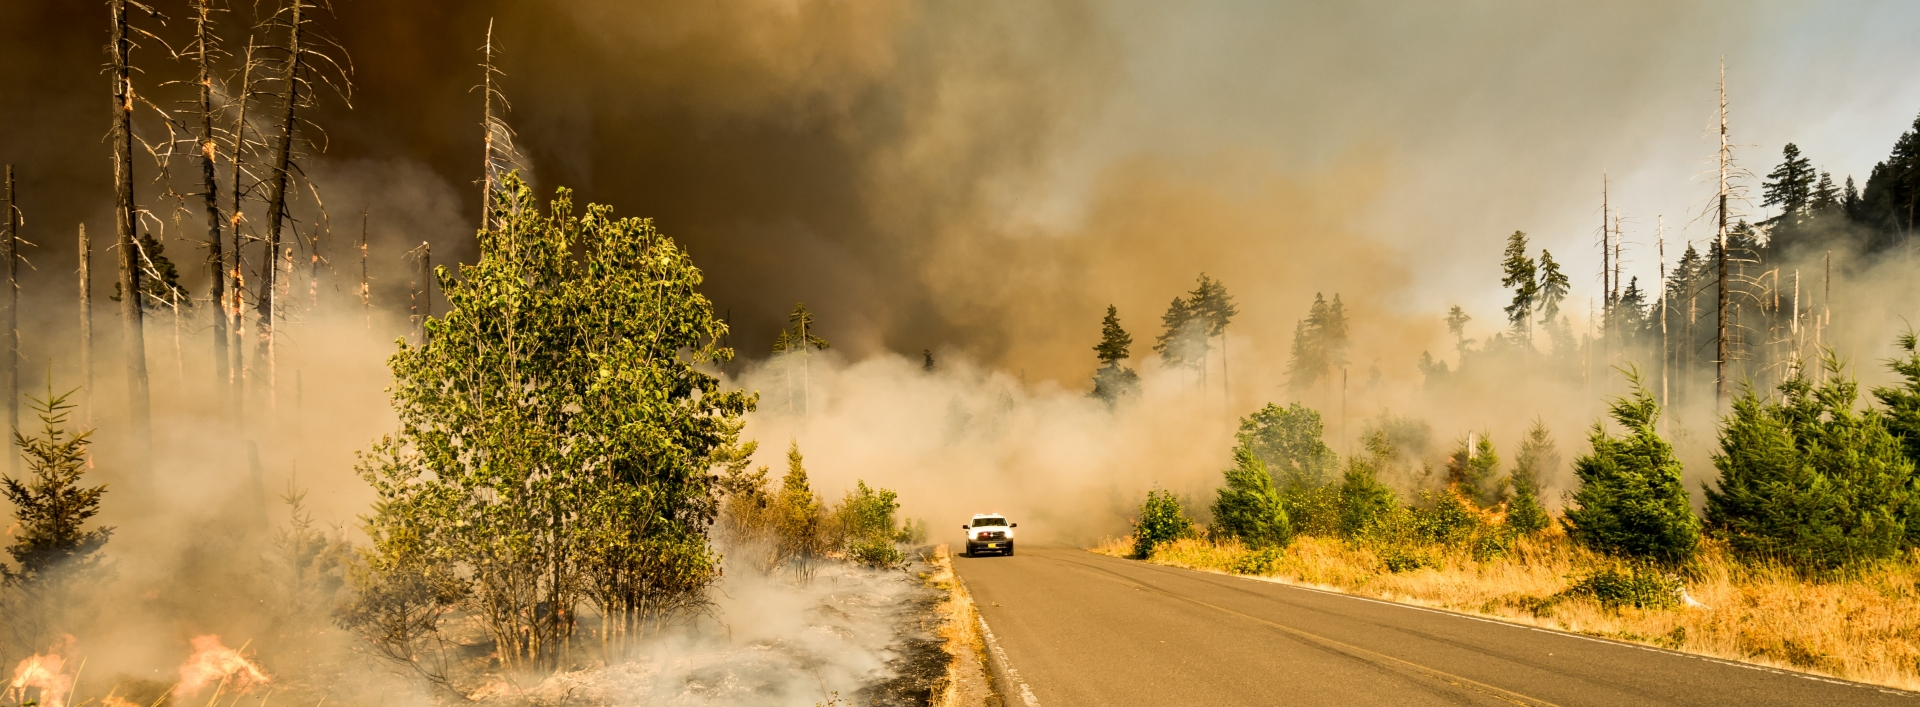 A mountain road is obscured by smoke from a wildfire